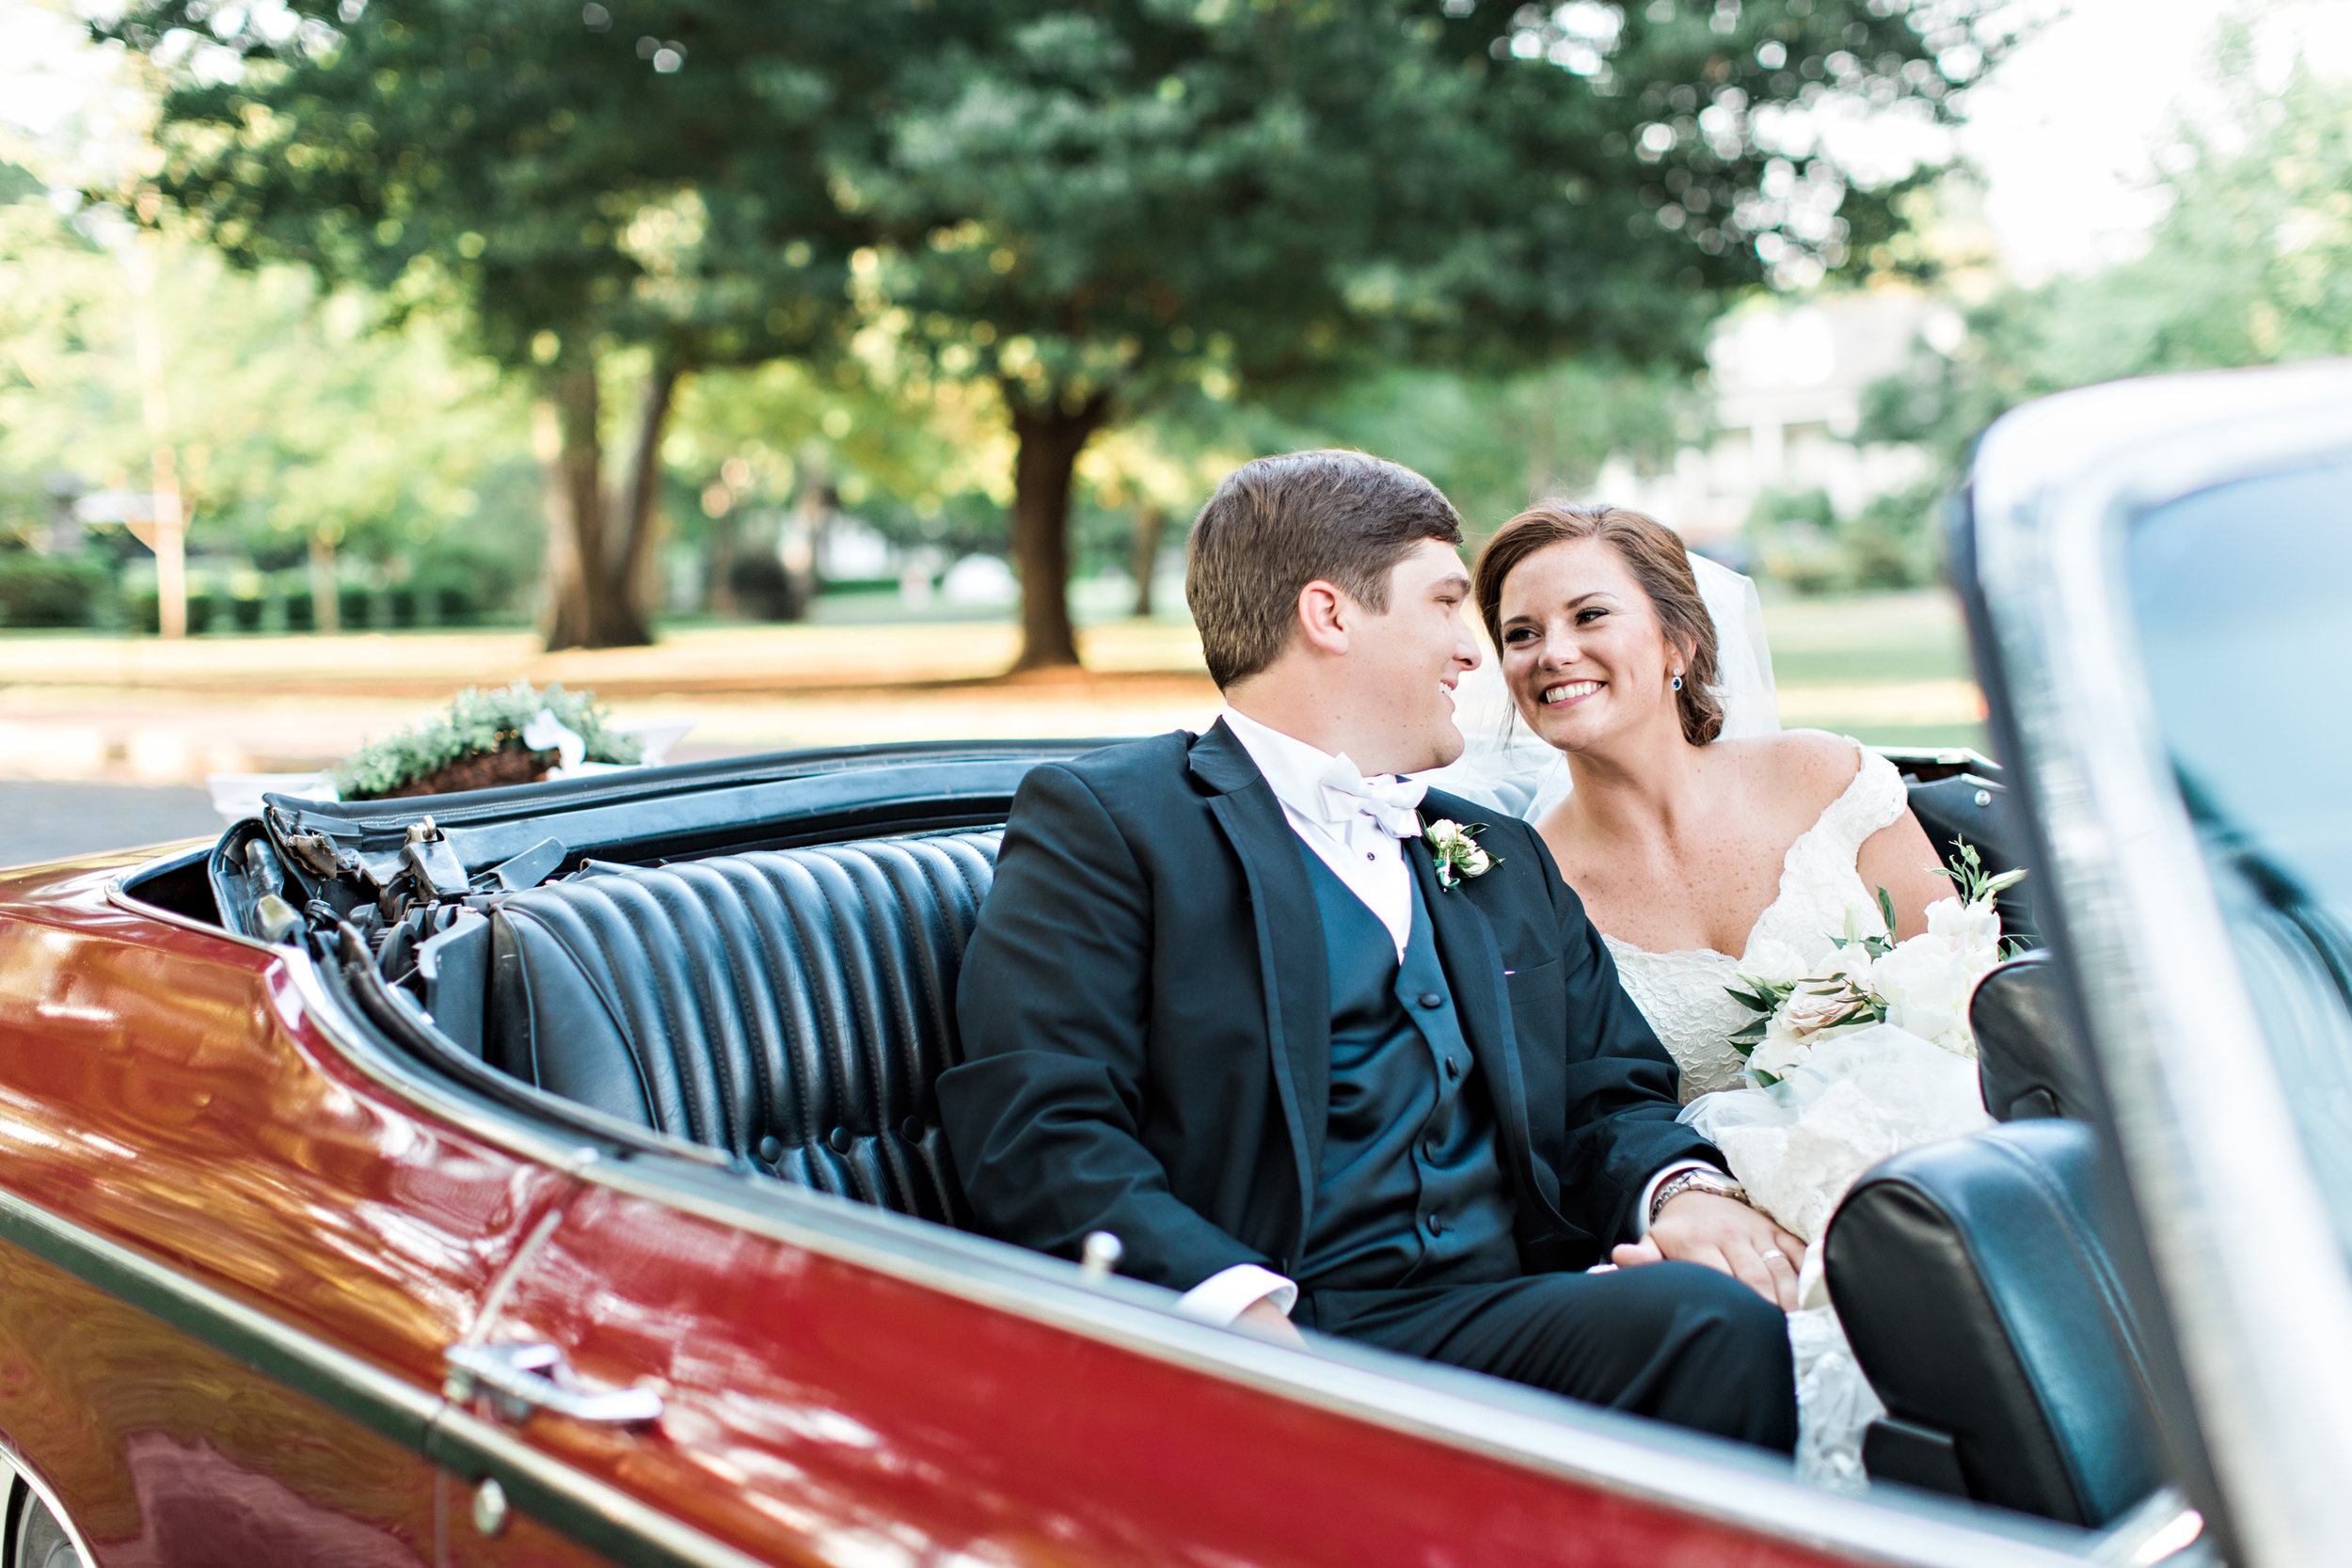 Alabama-Wedding-Photographers-Nick-Drollette-Josie and Heath-140.jpg